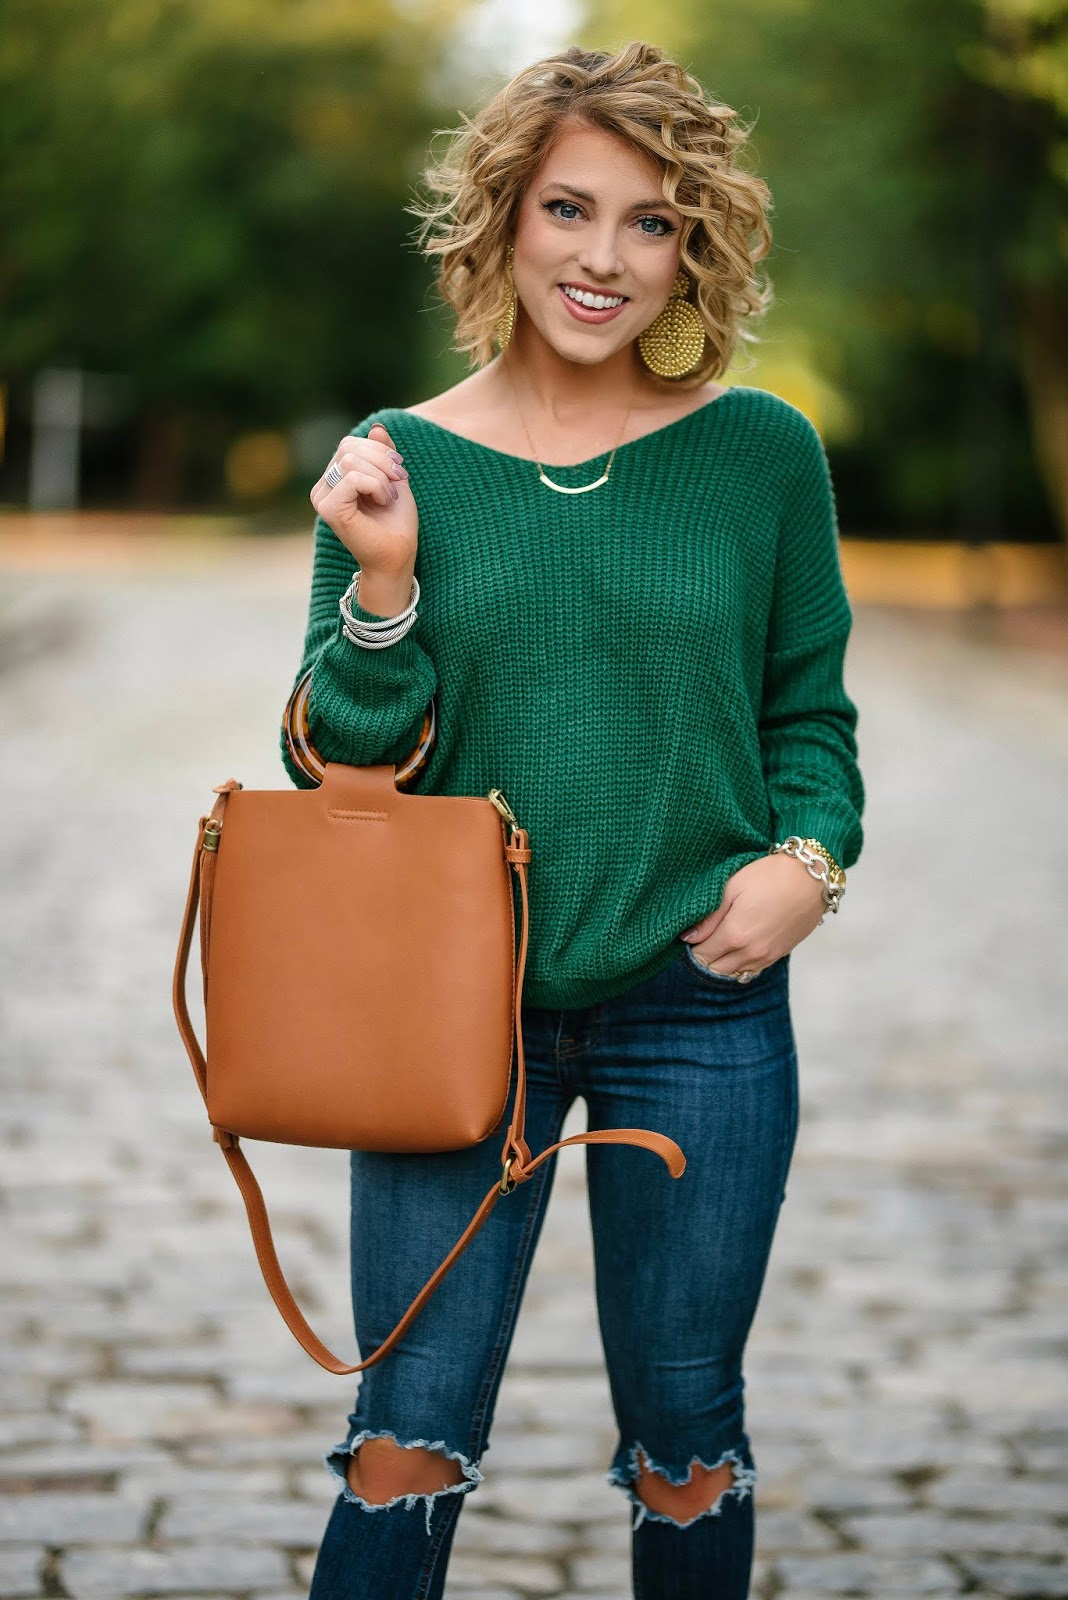 Leopard + Emerald Green for Fall: Under $60 Twist Back Sweater - Something Delightful Blog